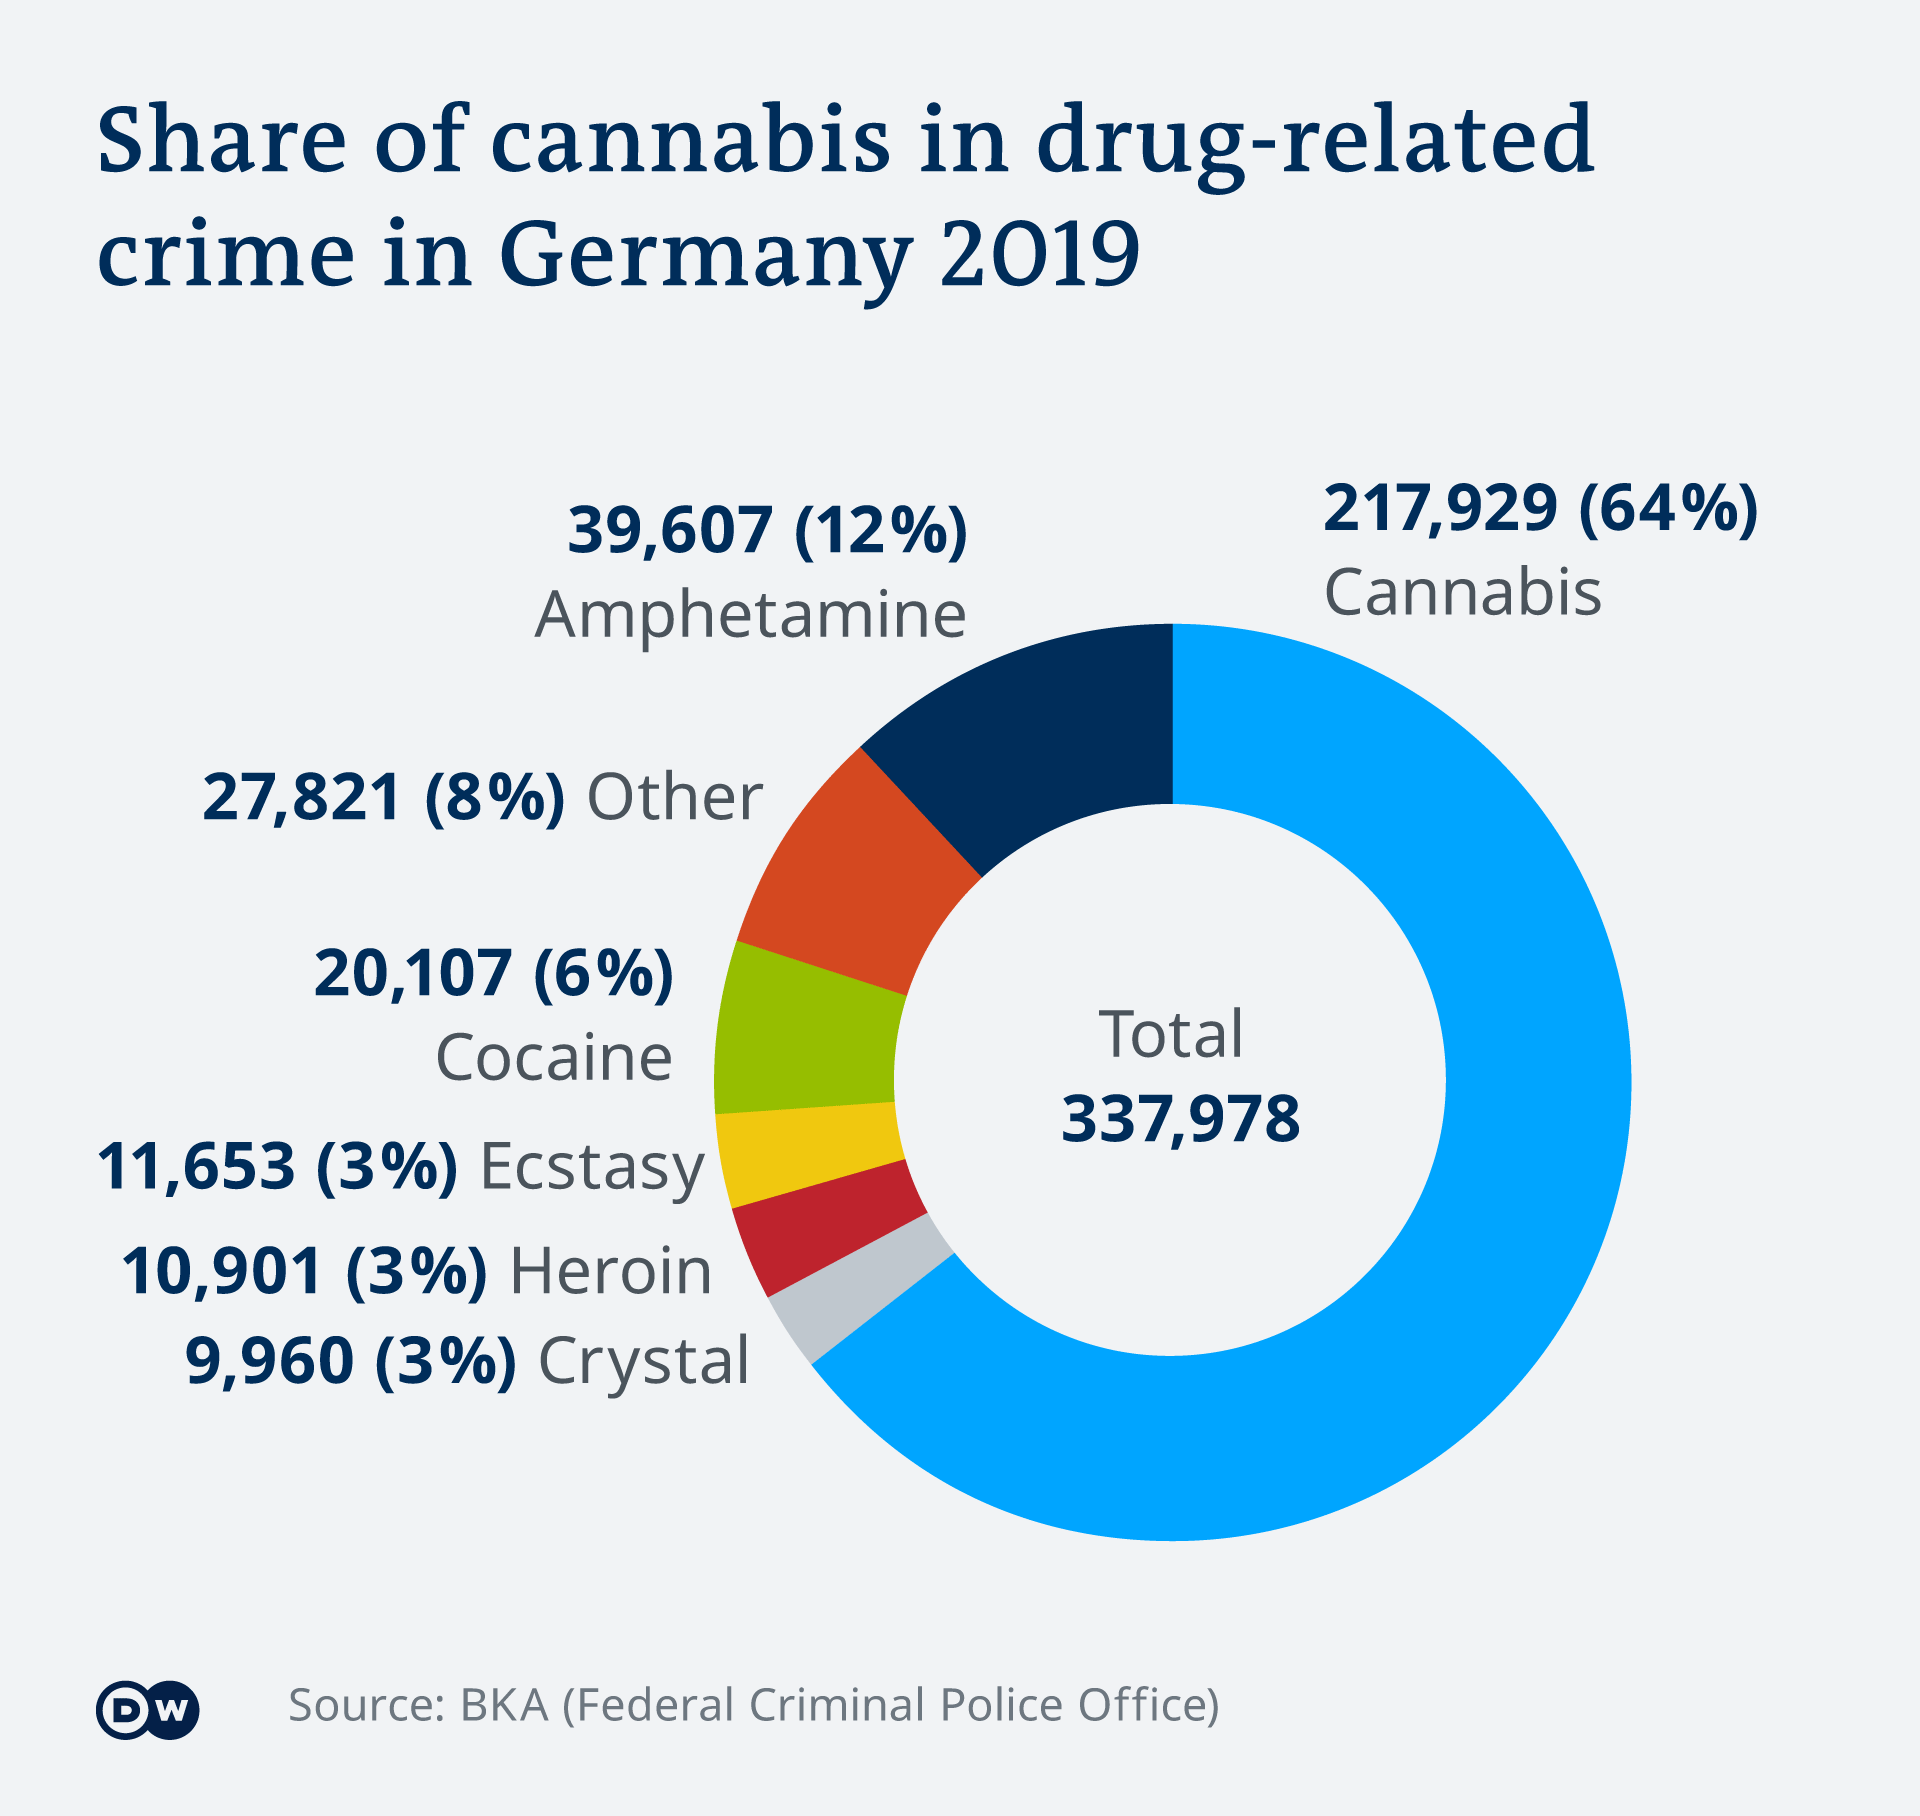 Image showing the share of cannabis in drug related crime to be very high